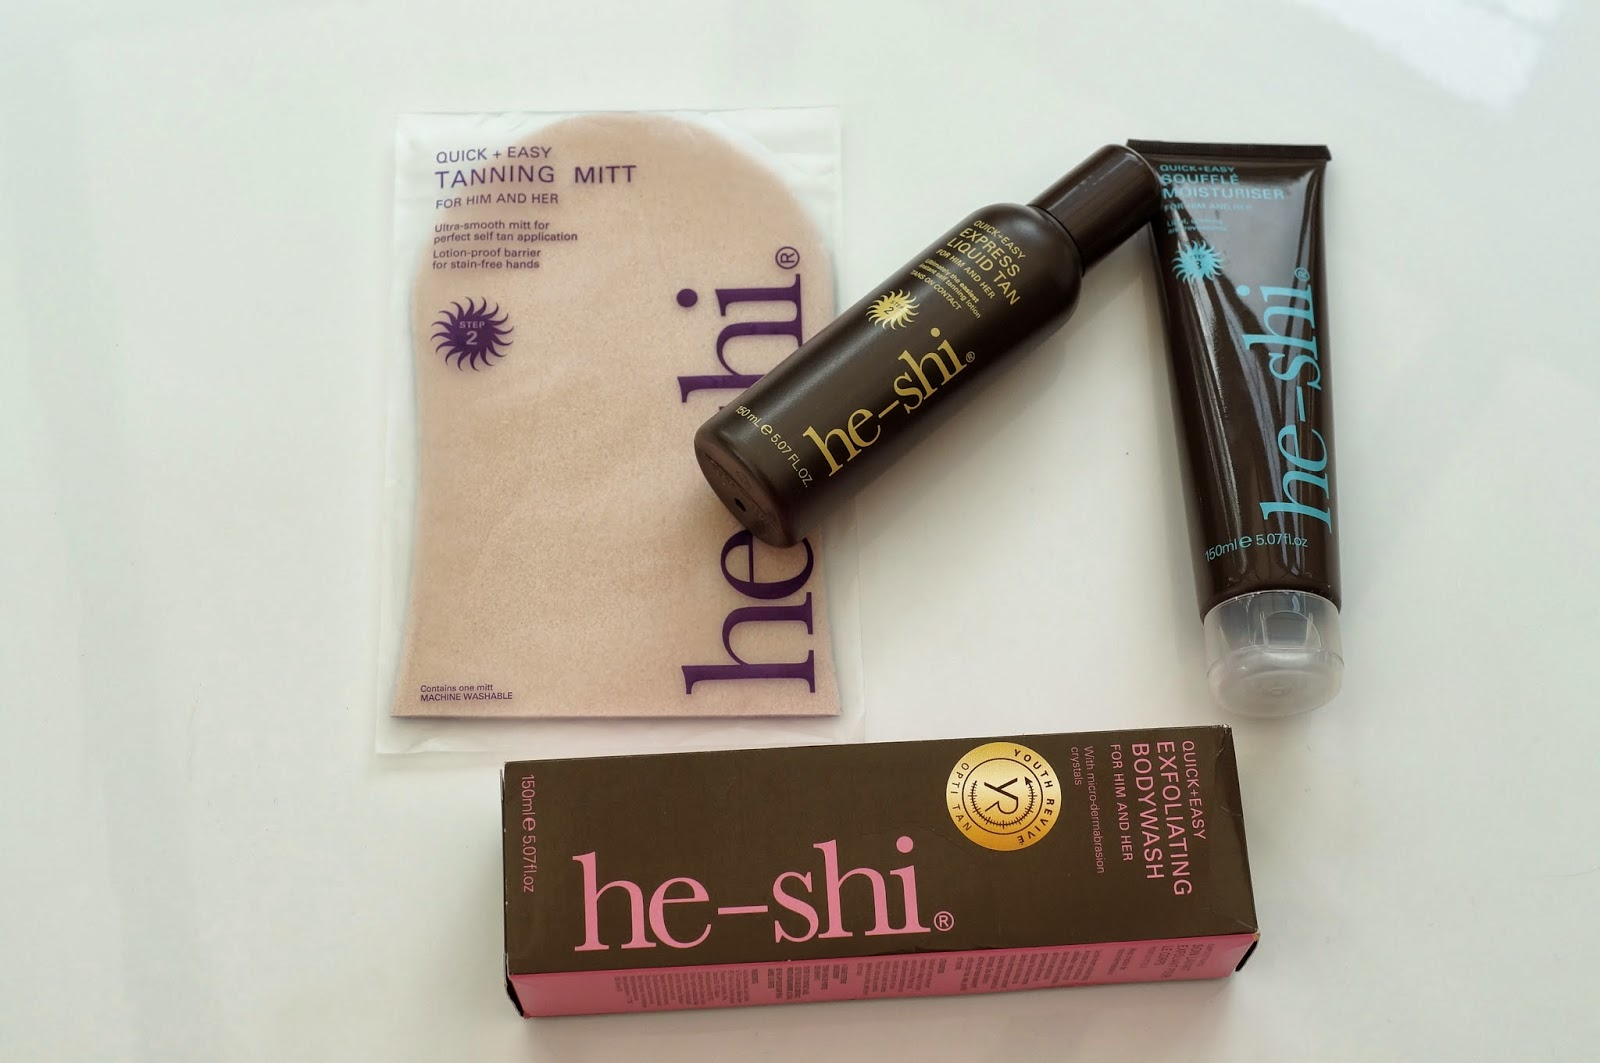 he-shi fake tan set